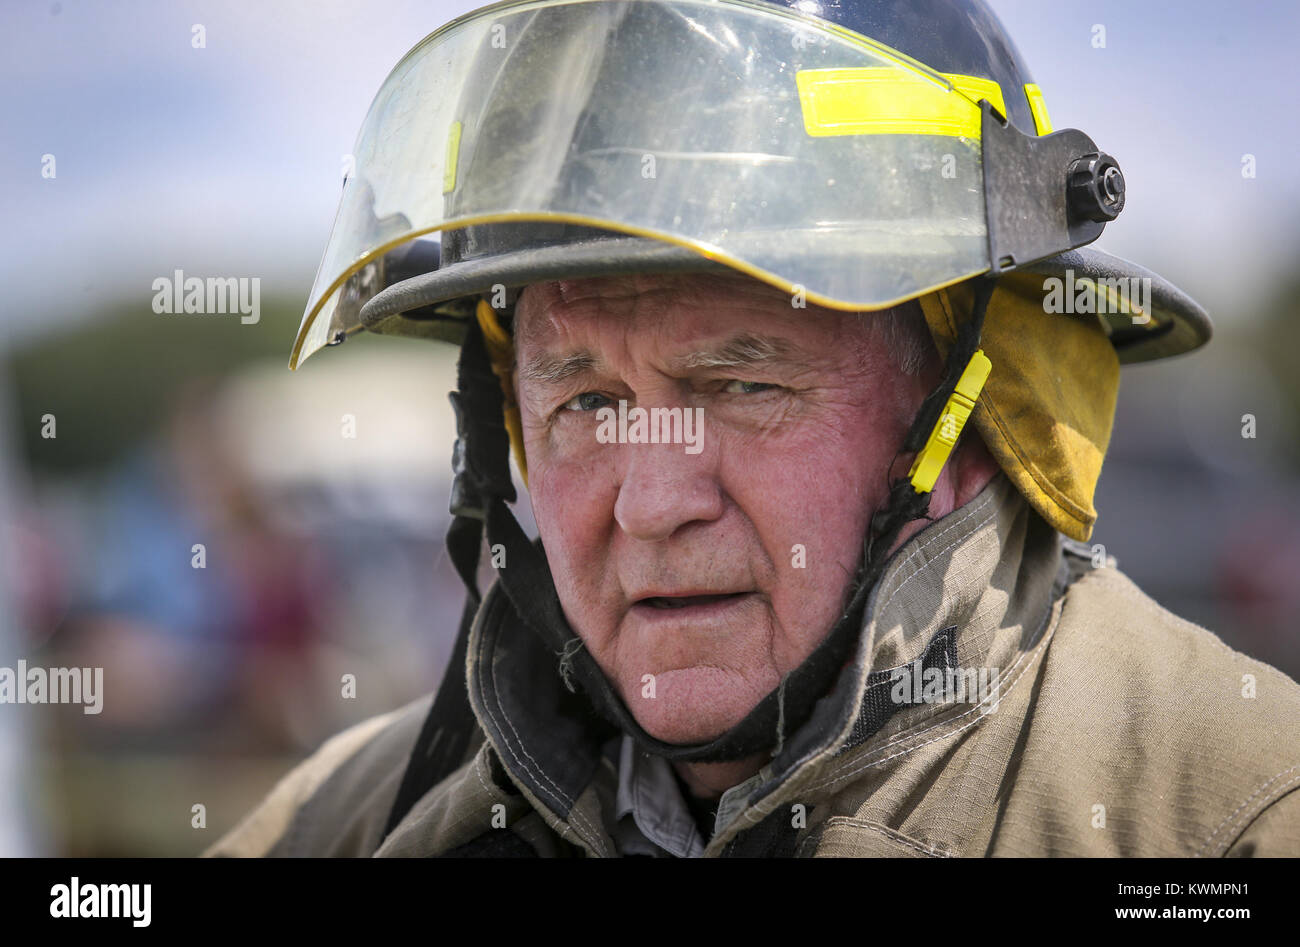 Davenport, Iowa, USA. 6th Aug, 2017. U.S. Secretary of Agriculture Sonny Perdue is seen in firefighter gear while - Stock Image